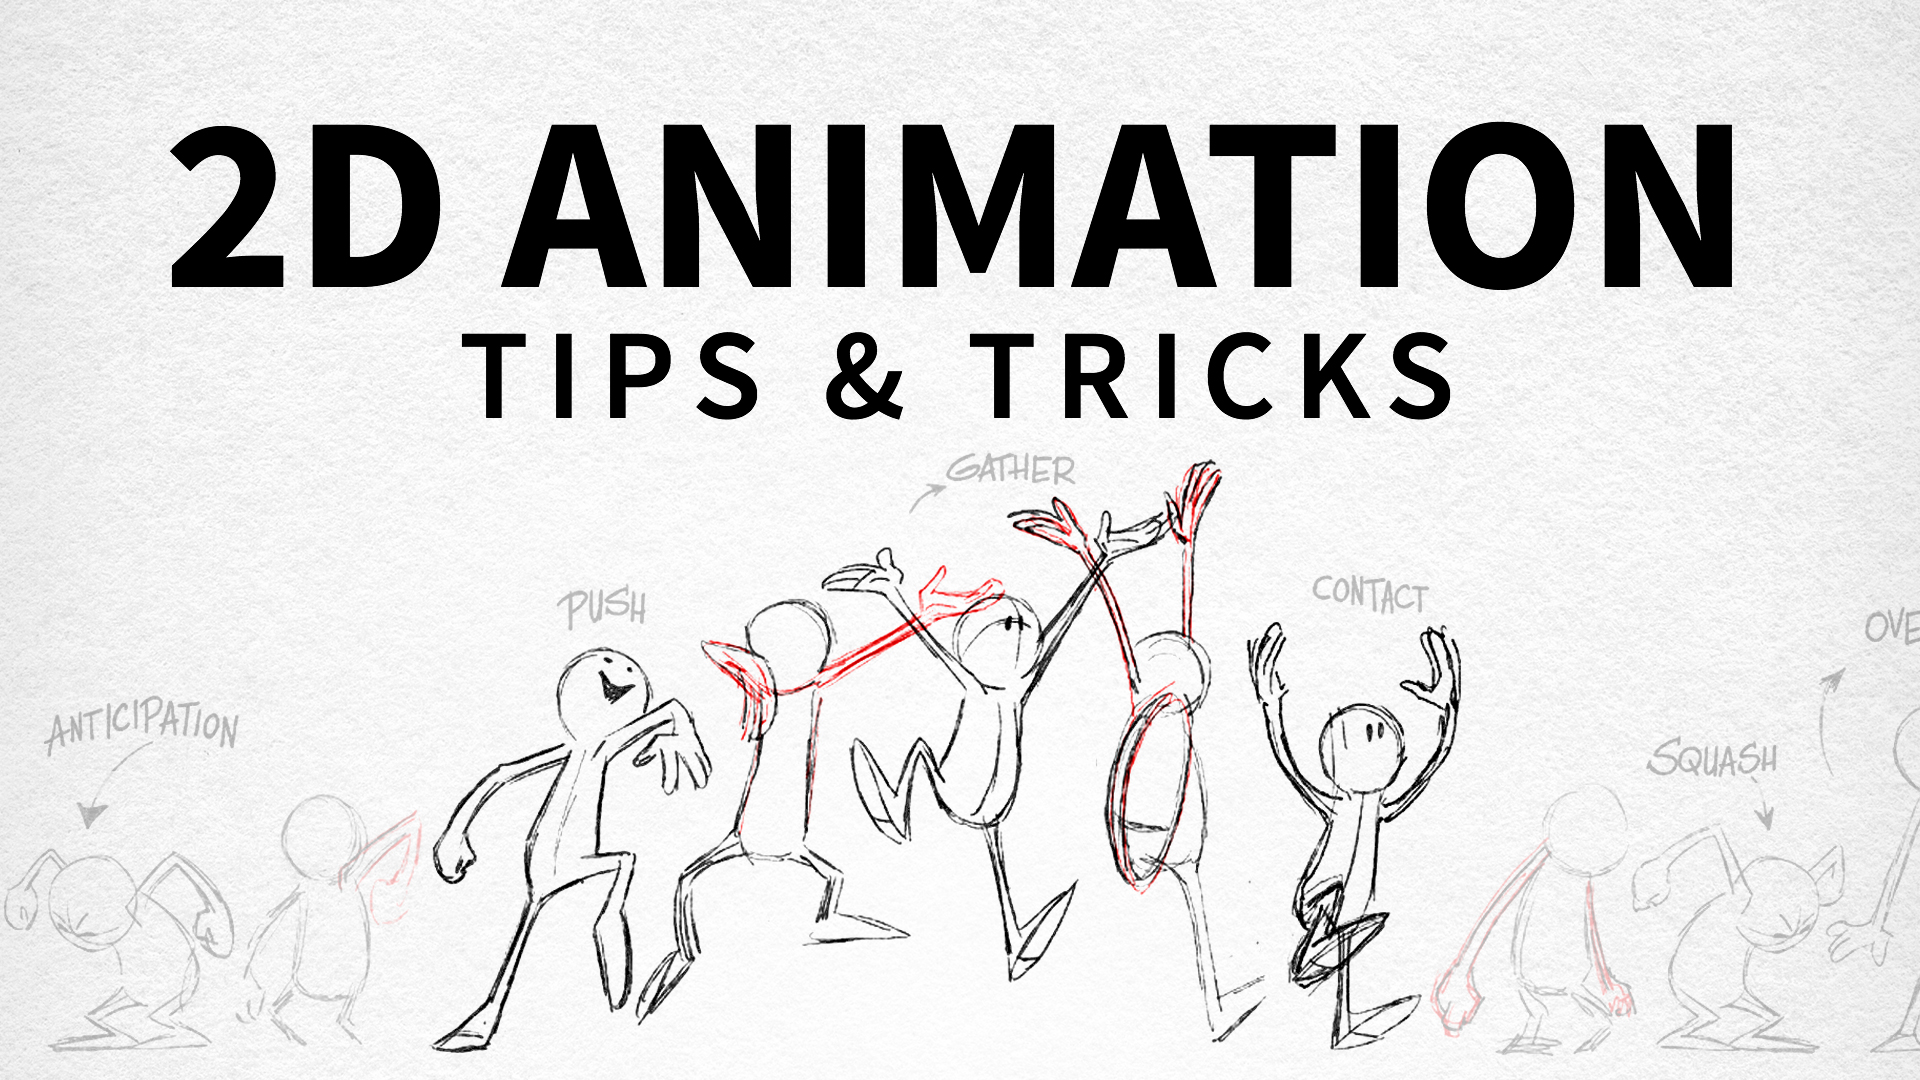 2d animation tips and